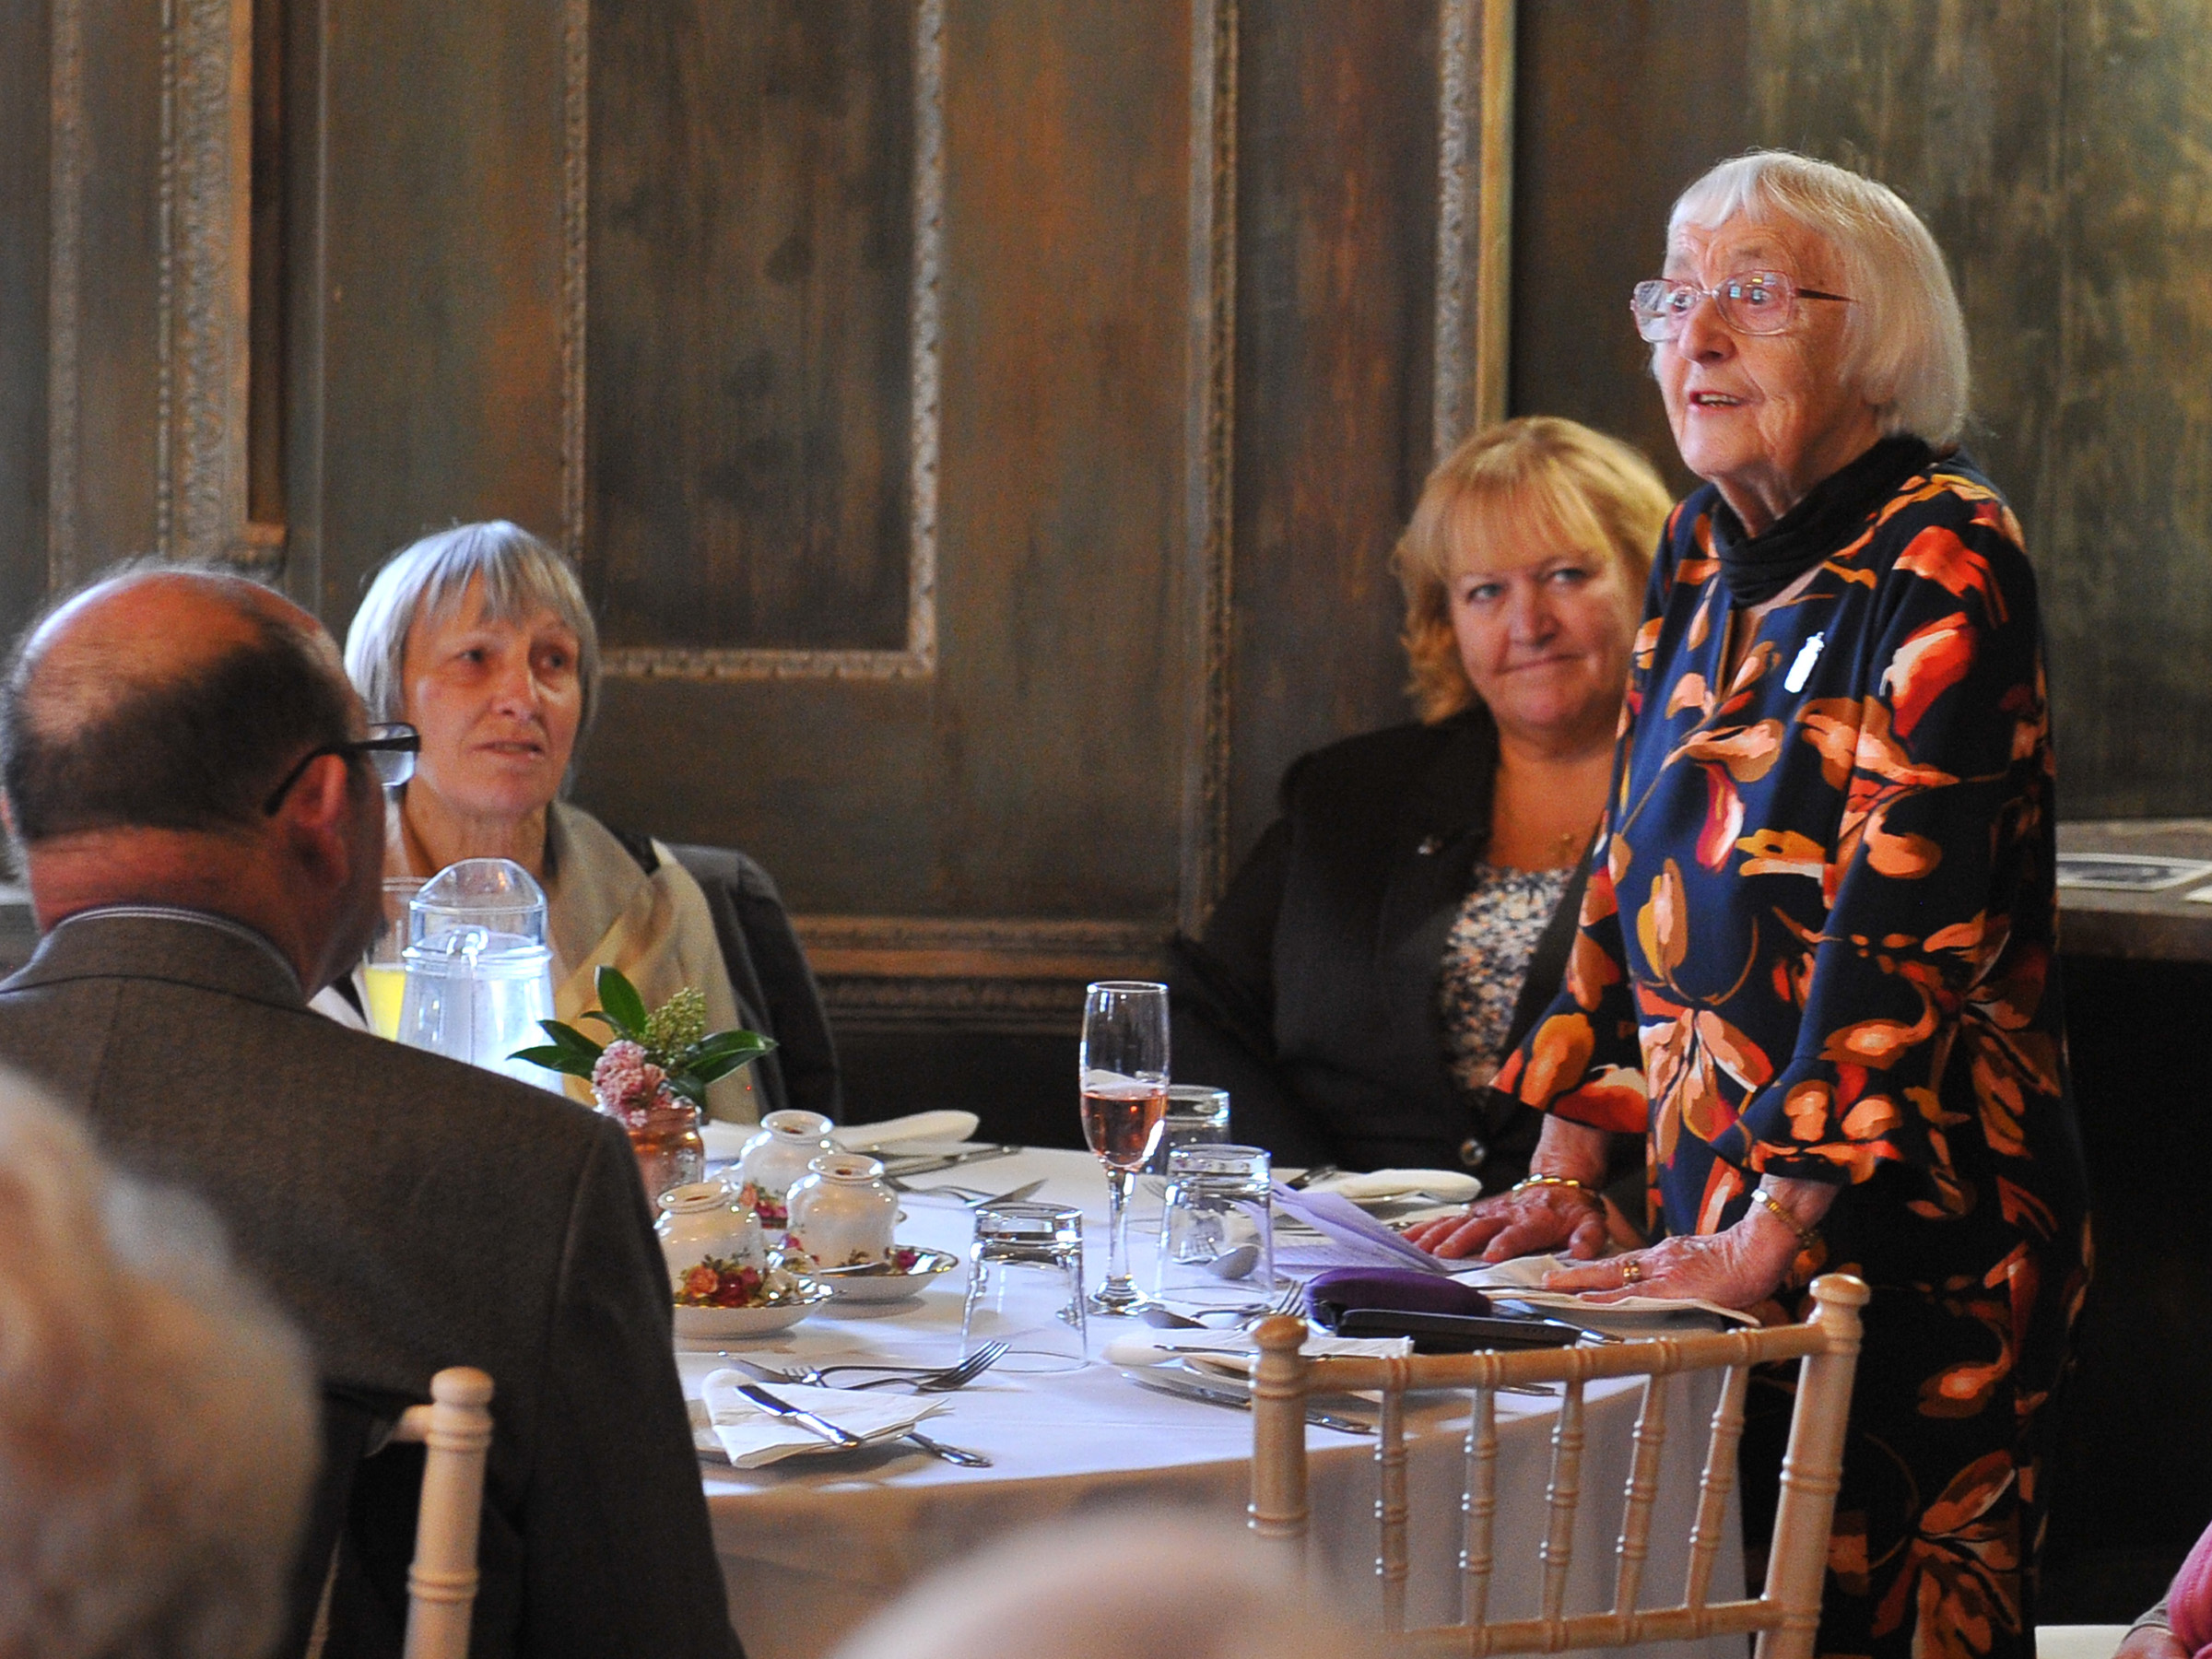 Former students at the Lady Mabel College of Physical Education, recently attended a lunch to celebrate the 70th anniversary of the college's opening. The lunch took place in the Lower Gallery at Wentworth Woodhouse, which used to be their dining room. First pupil through the doors on her 19th birthday, Sybil Wilbraham, is seen giving a speech at the lunch.